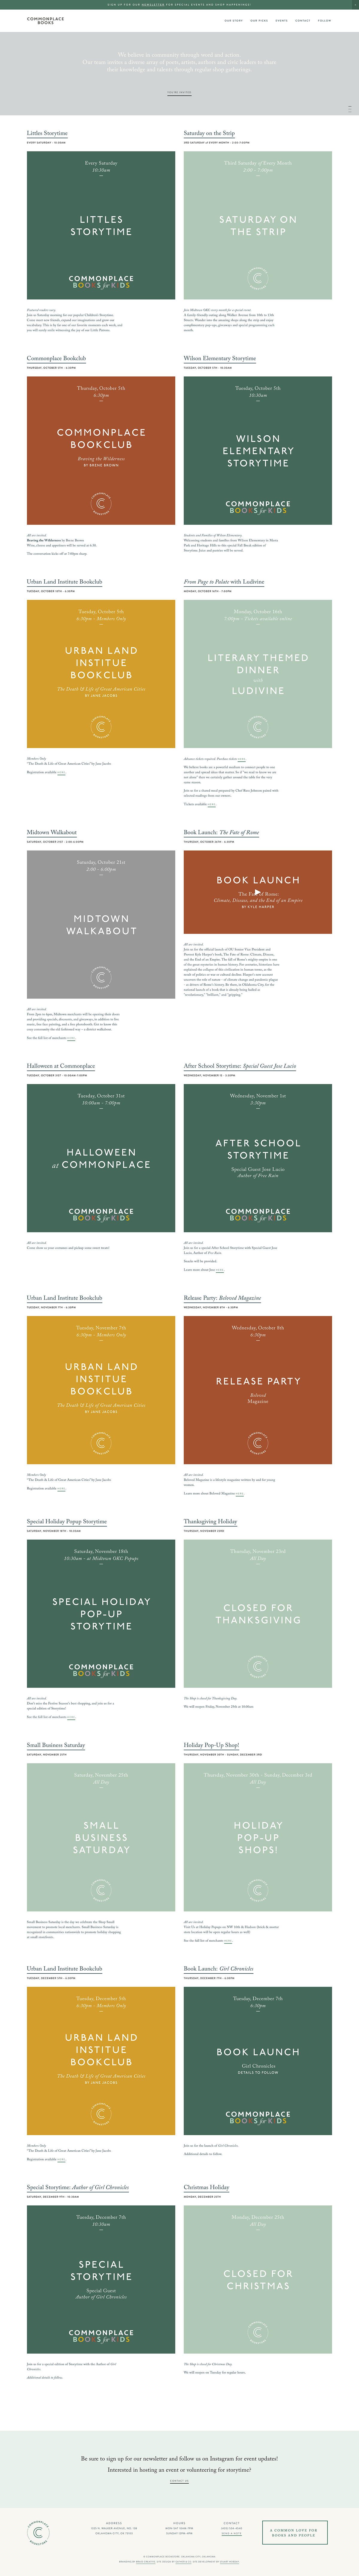 squarespace Commonplace books Gather & Co books grid based Website The Printer's Son